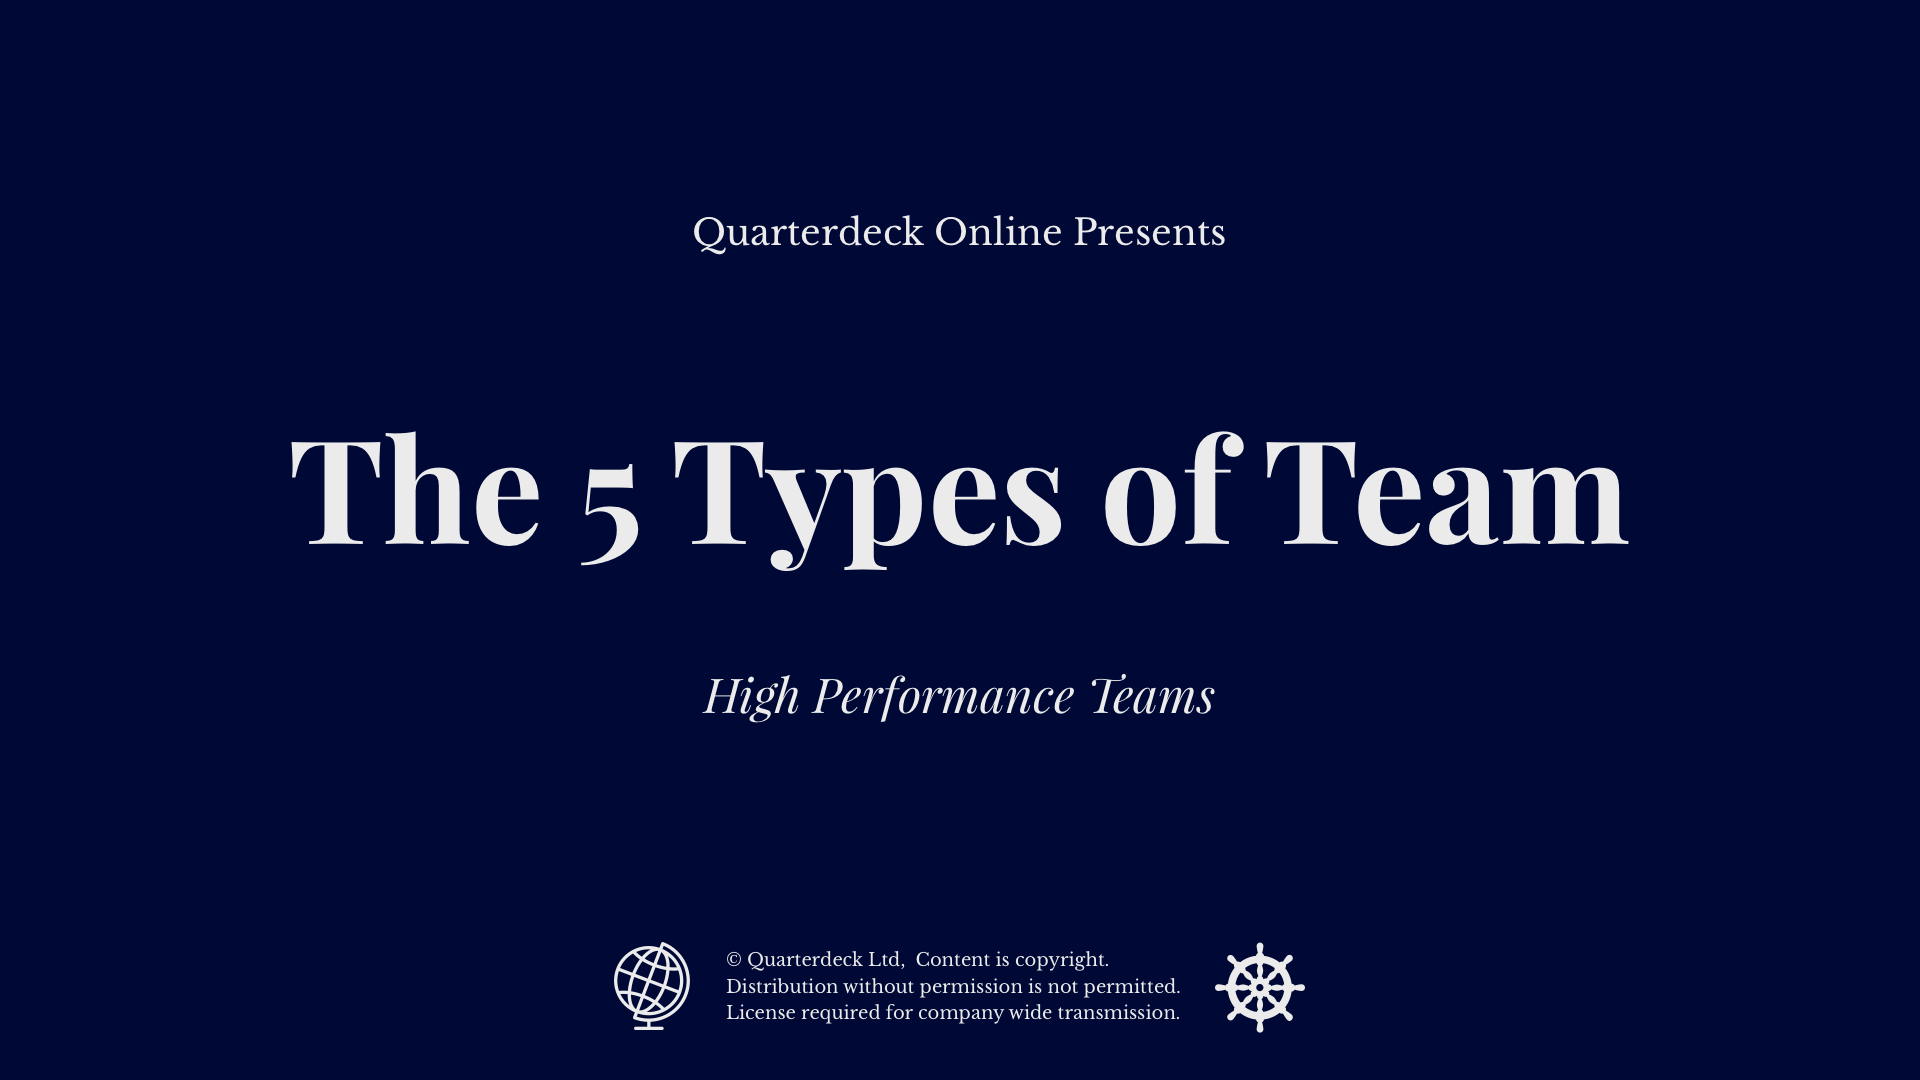 The 5 Types of Team